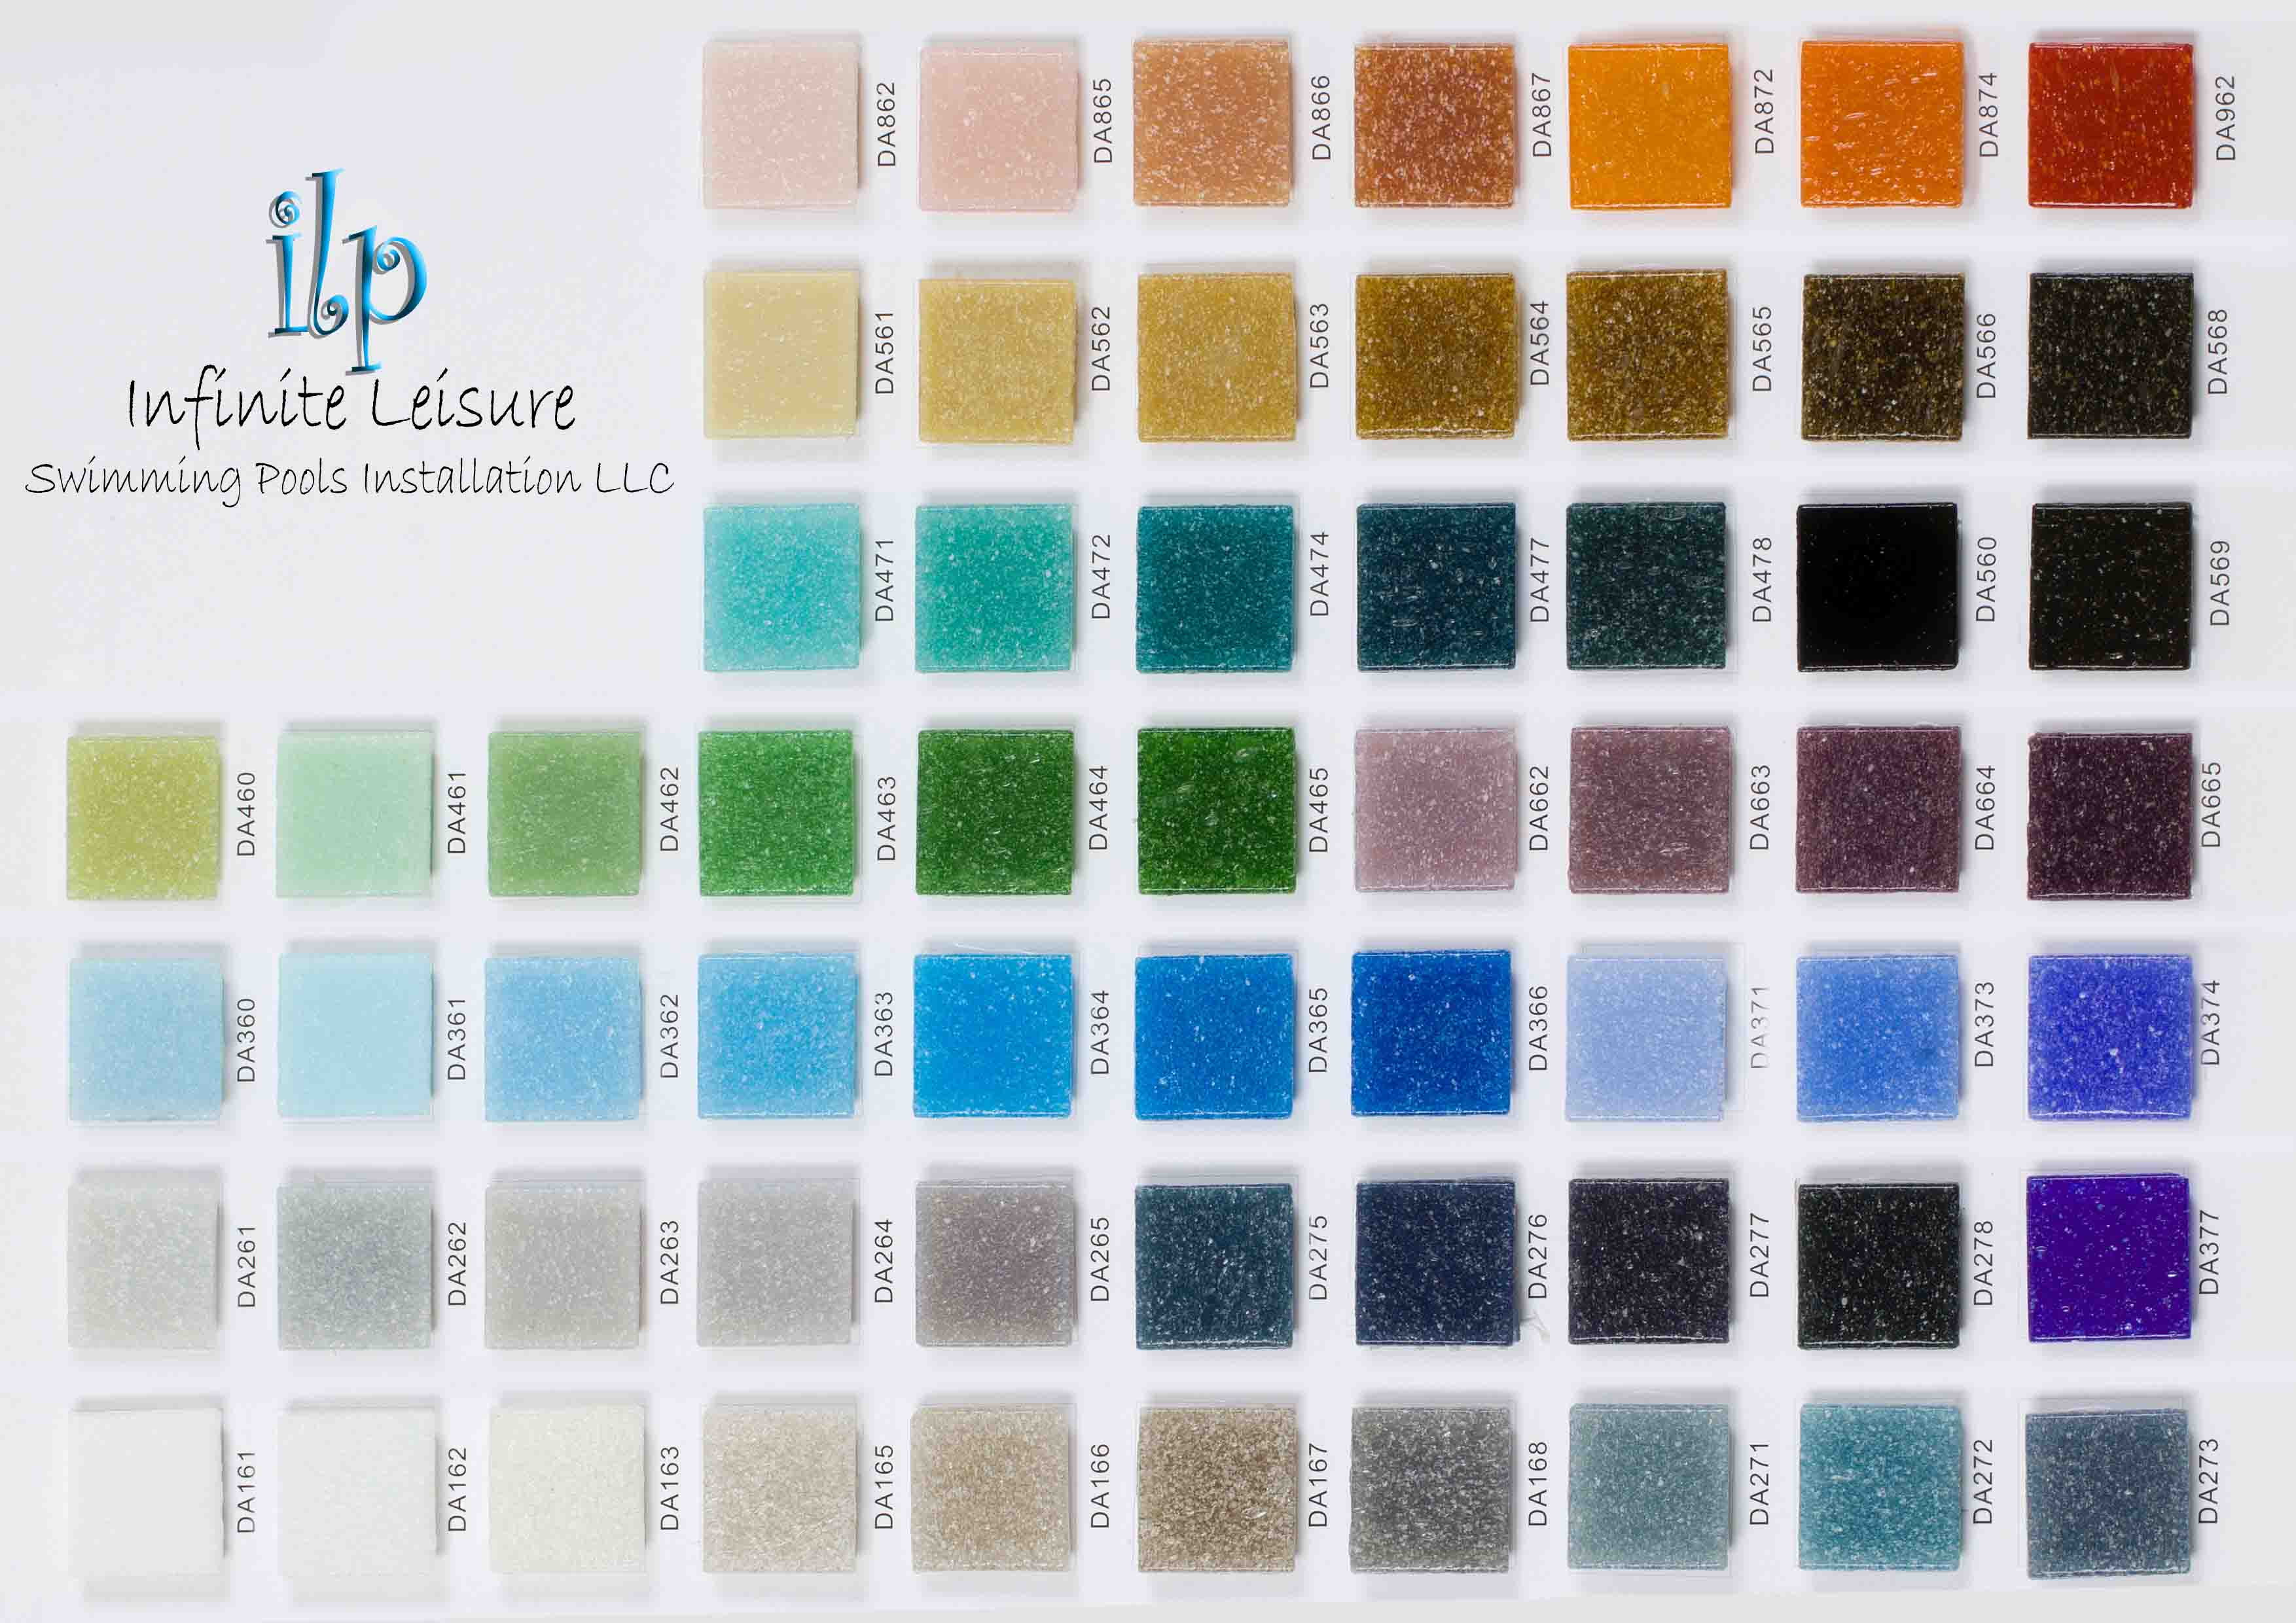 Swimming Pool Tiles Suppliers in Dubai l Pool Tiles l Design Pool Tiles